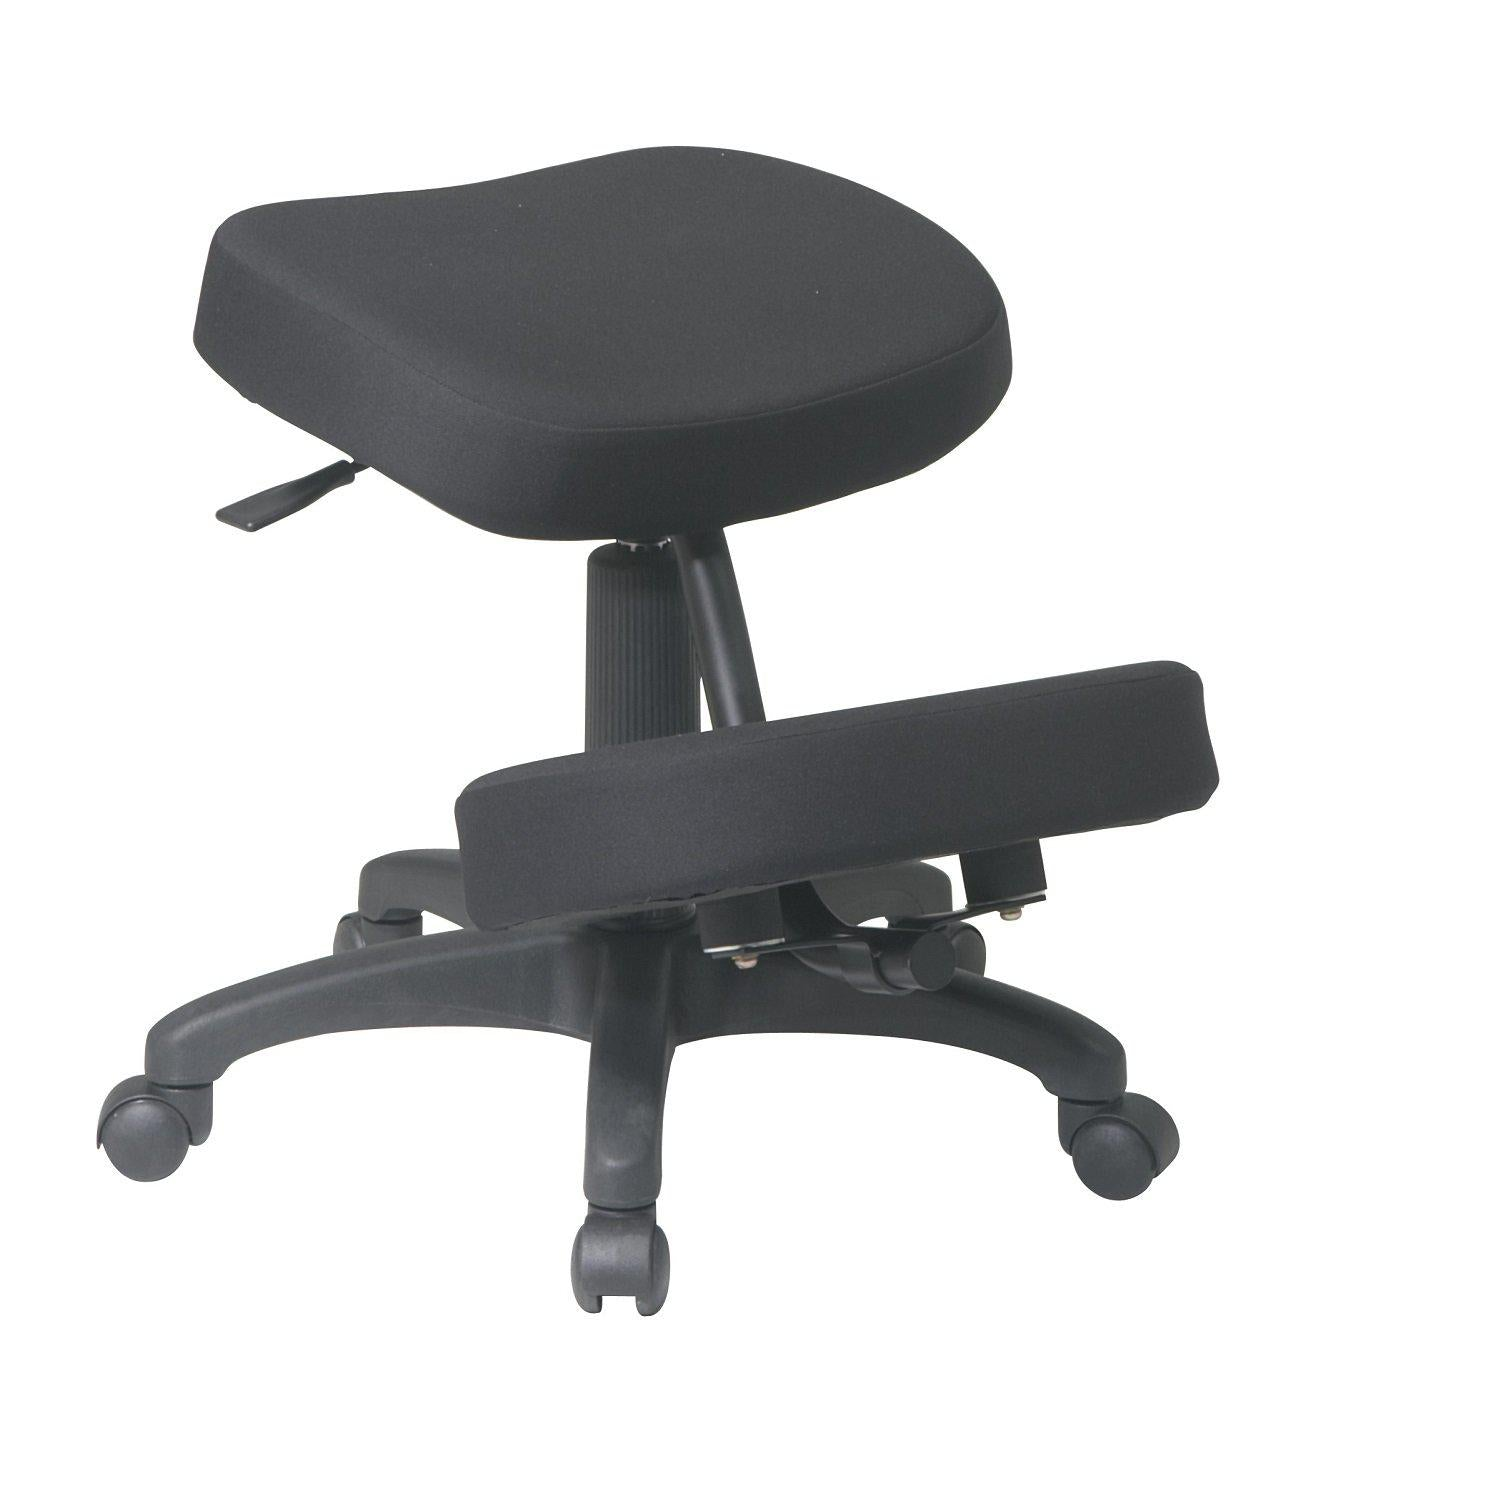 Ergonomically Designed Knee Chair with 5 Star Base, Casters and Memory Foam